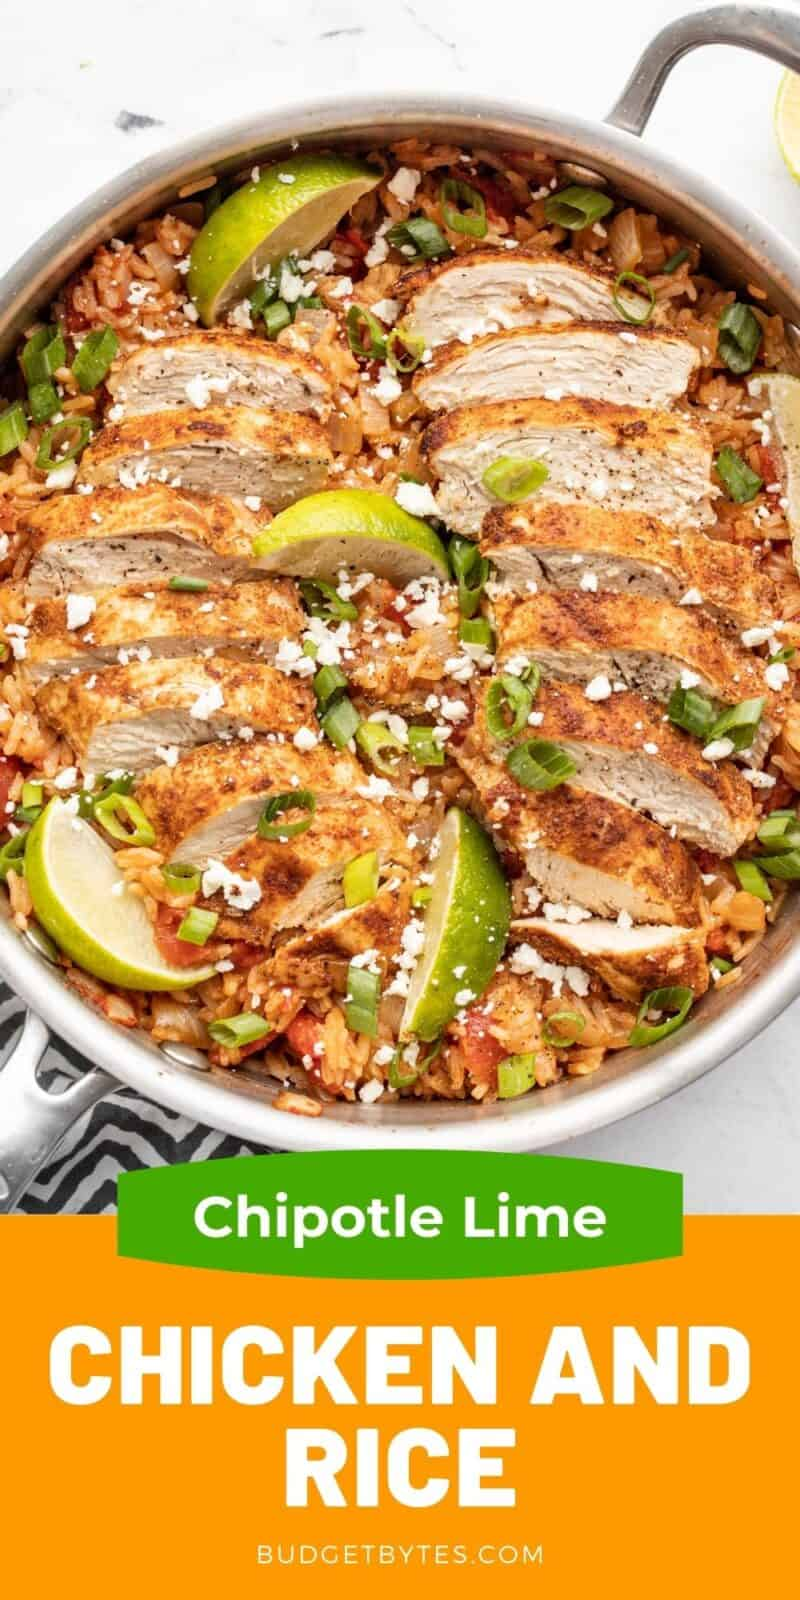 chipotle lime chicken and rice in a skillet, title text at the bottom